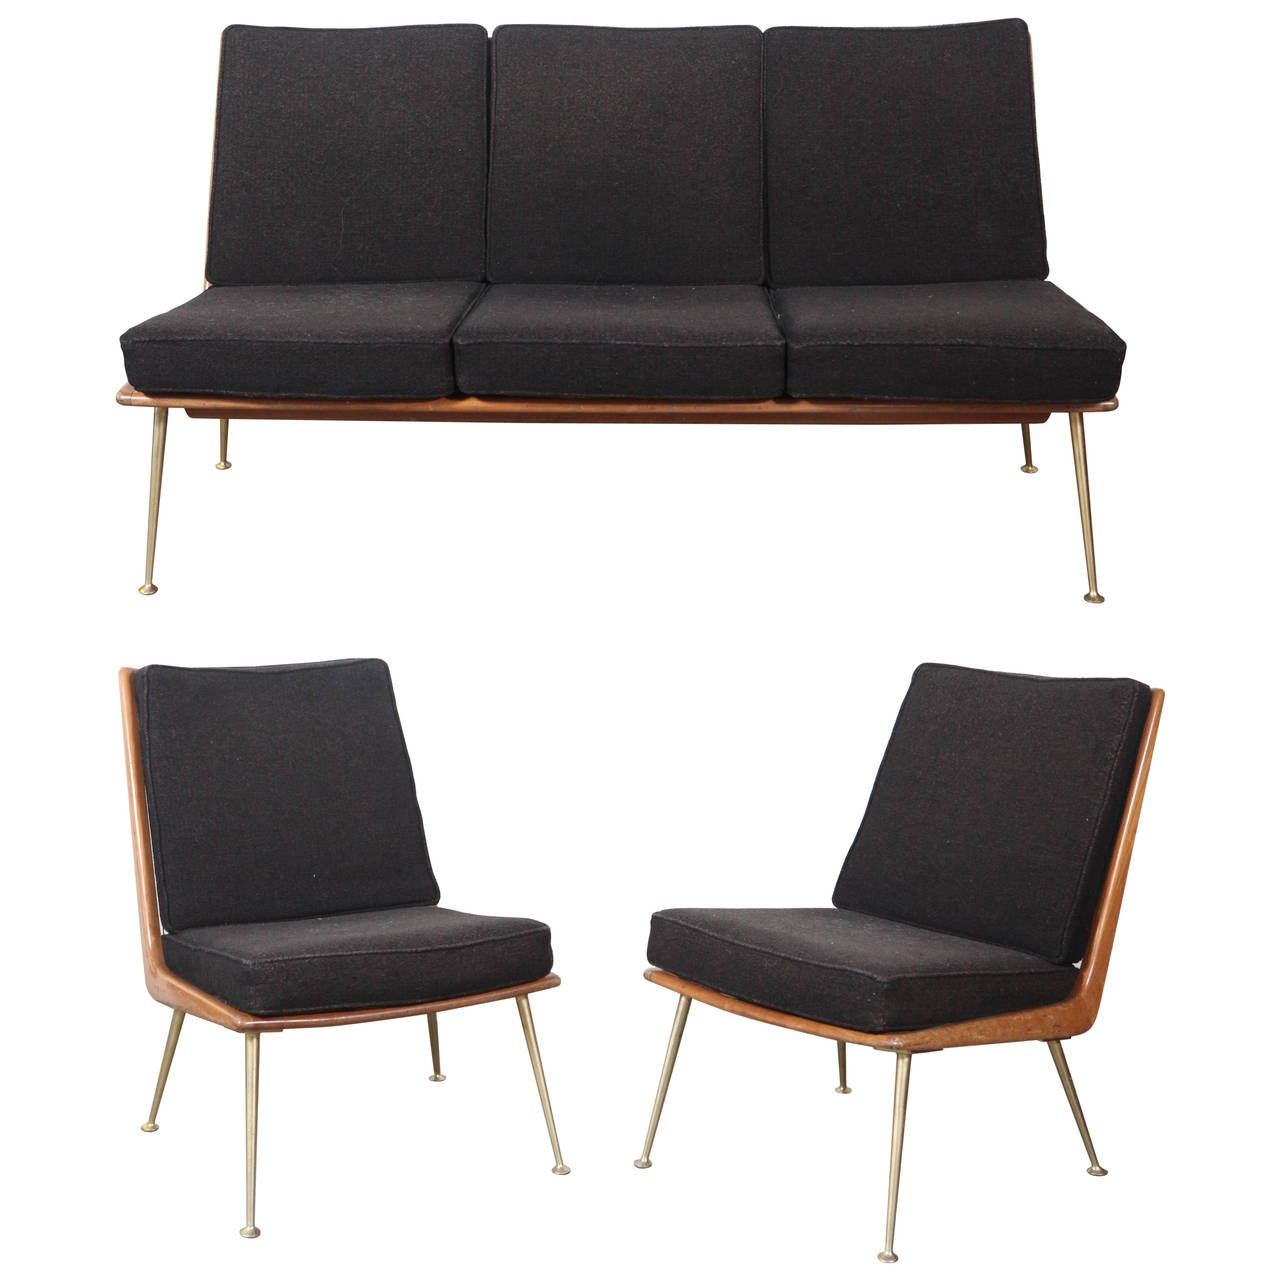 Boomerang Seating Group For Sale at 1stdibs